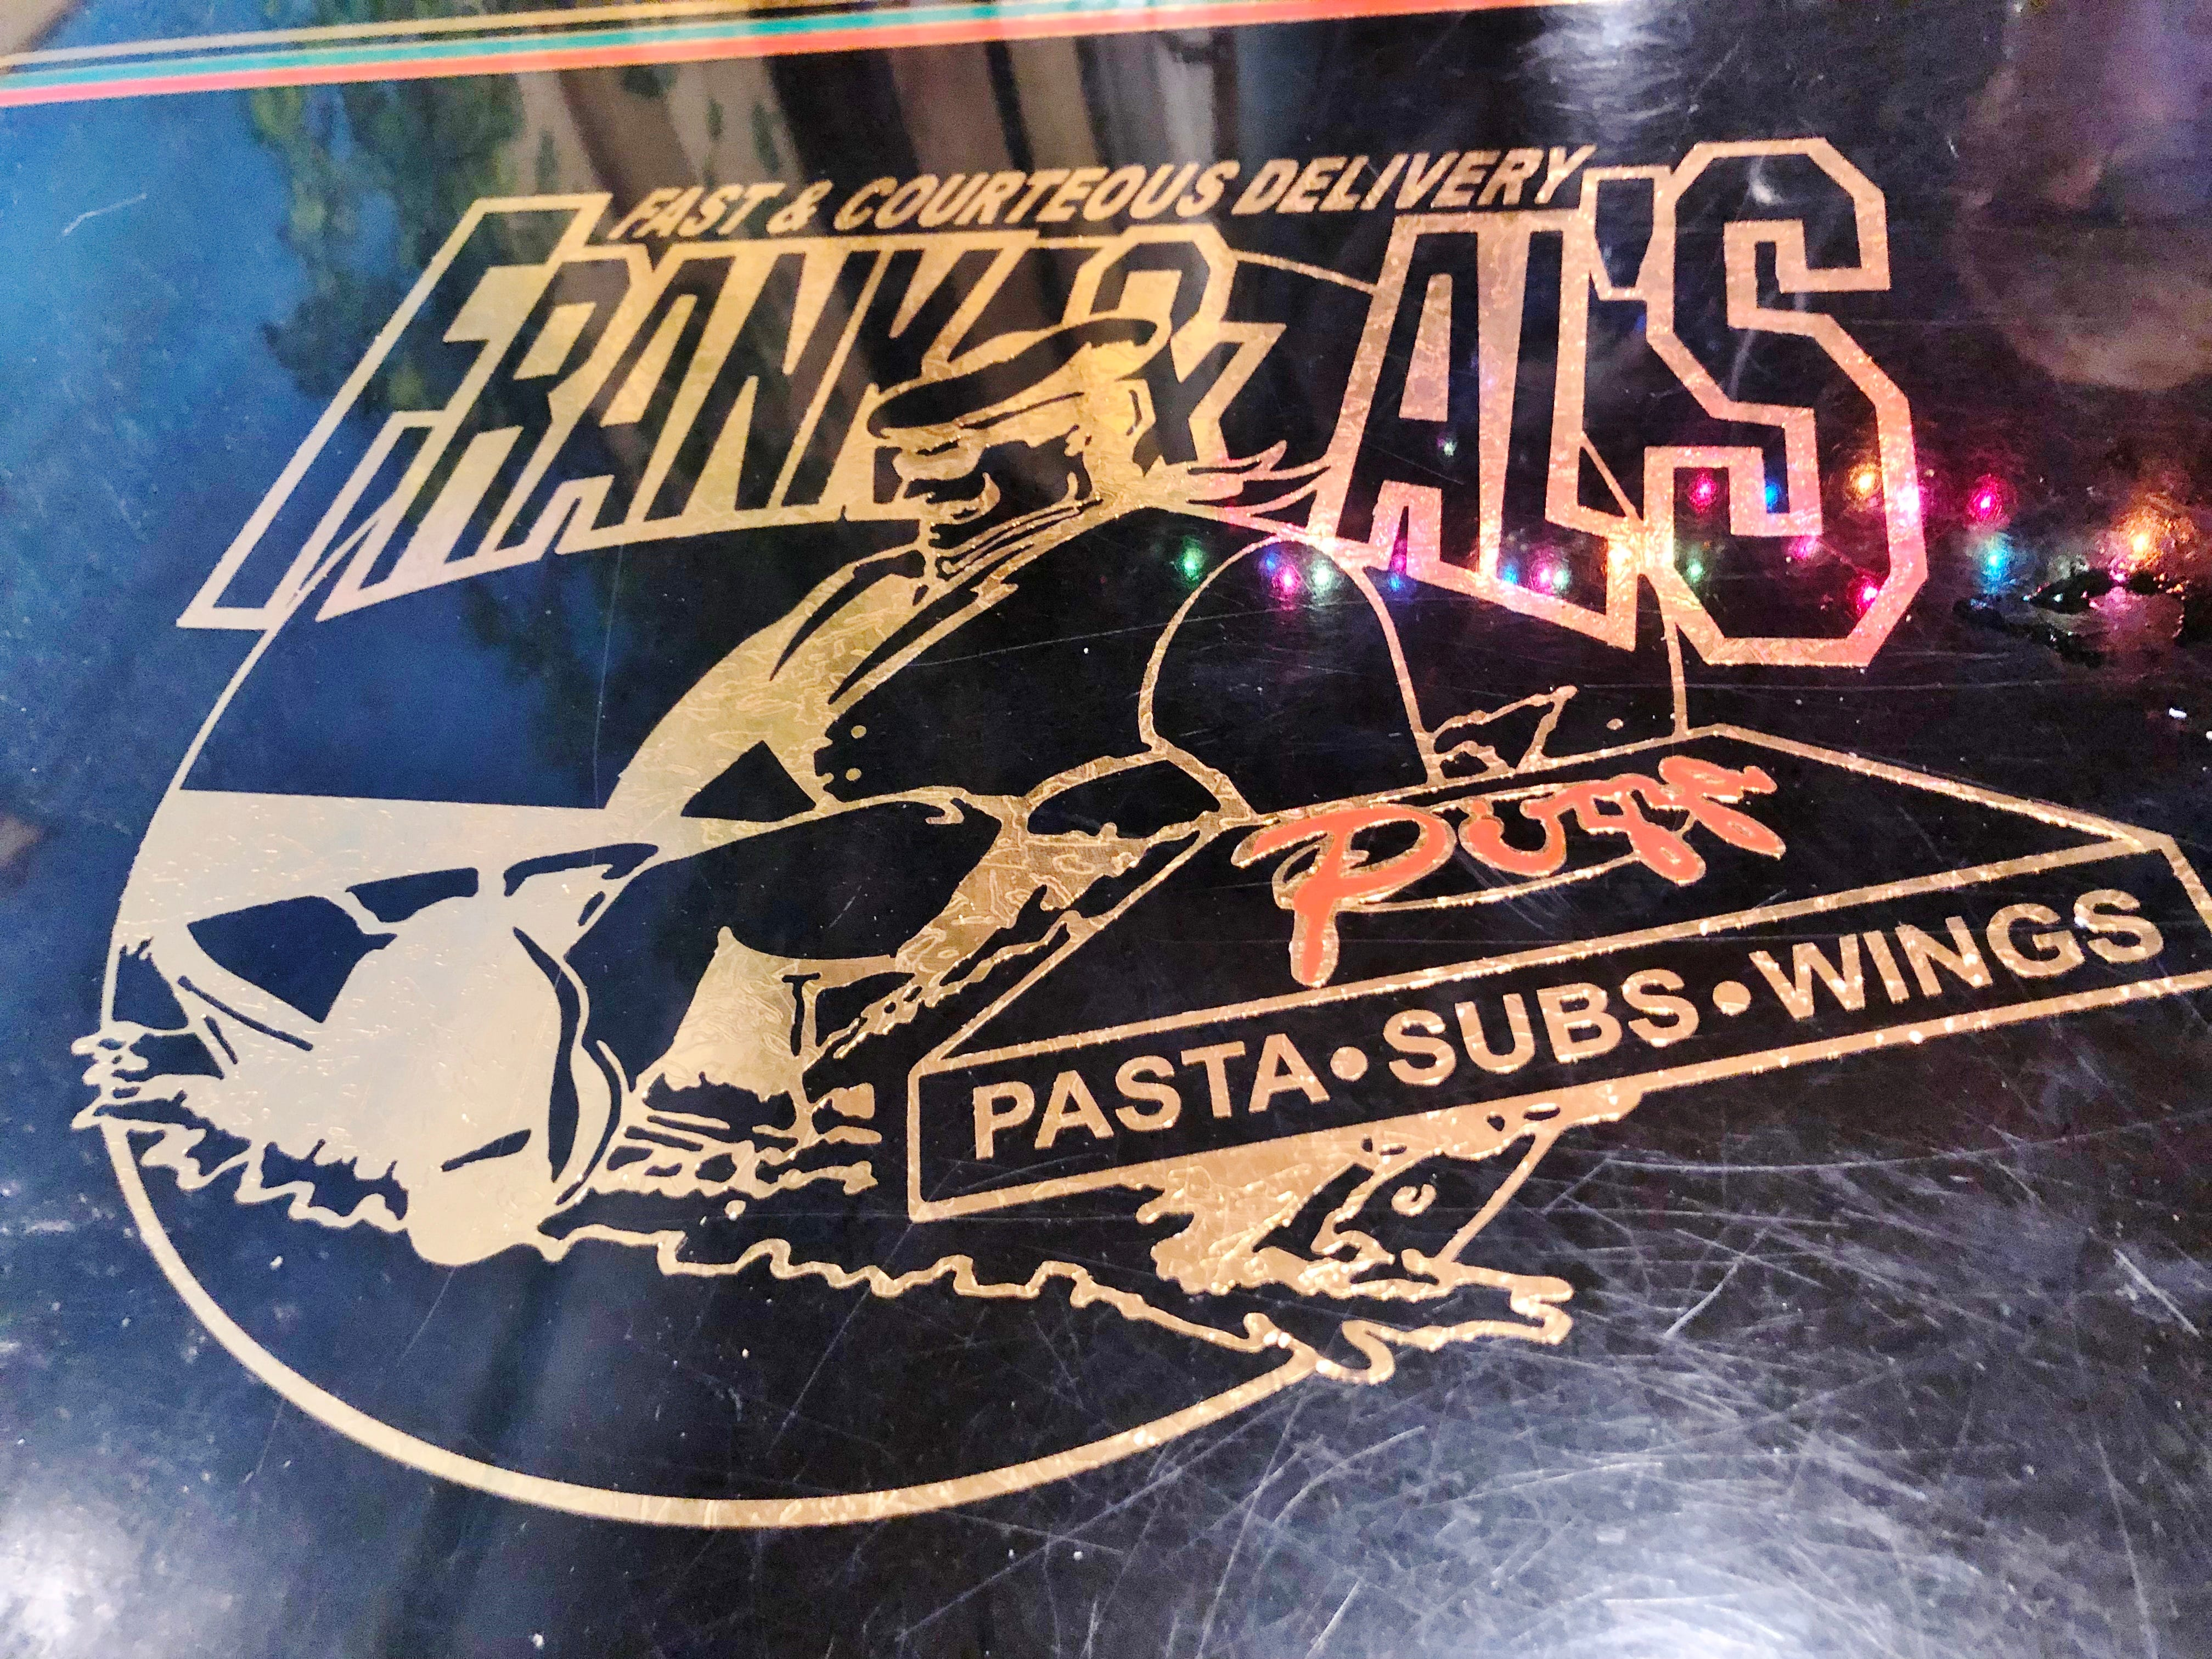 Frank & Al's Pizza has two locations, one in Port St. Lucie and the other in Fort Pierce.